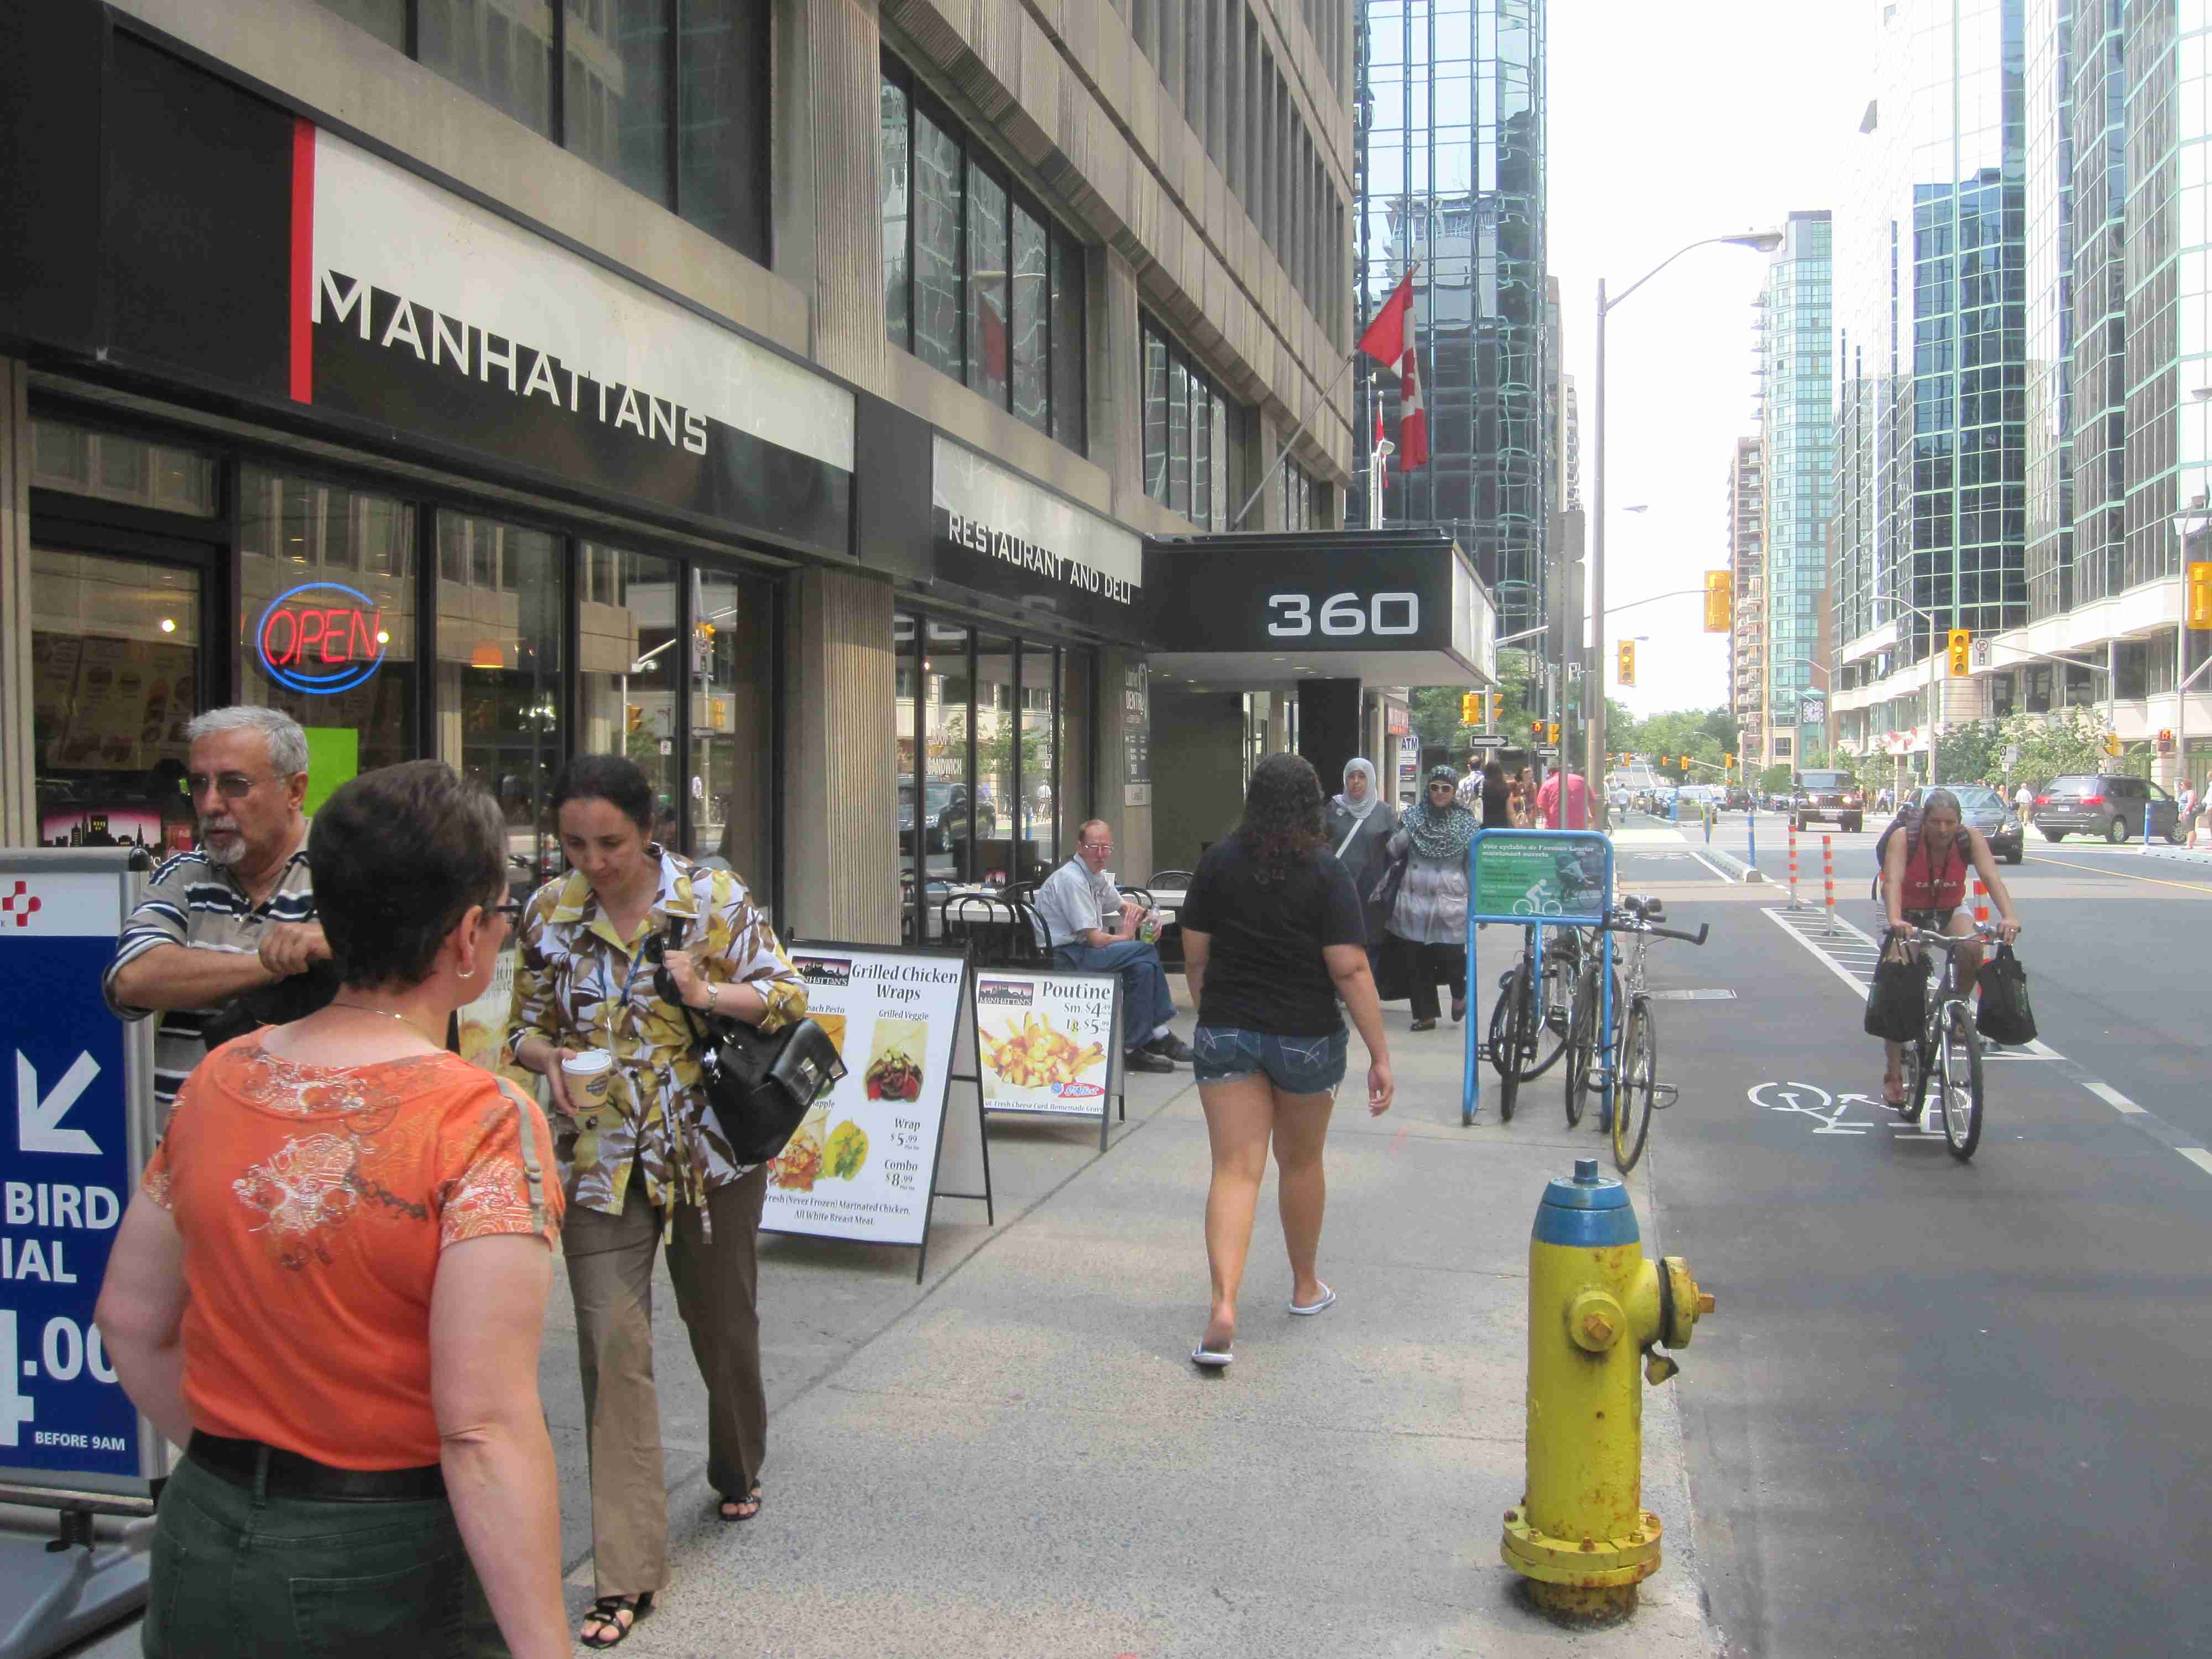 Ottawa Bicycle Culture – 360 Manhattans